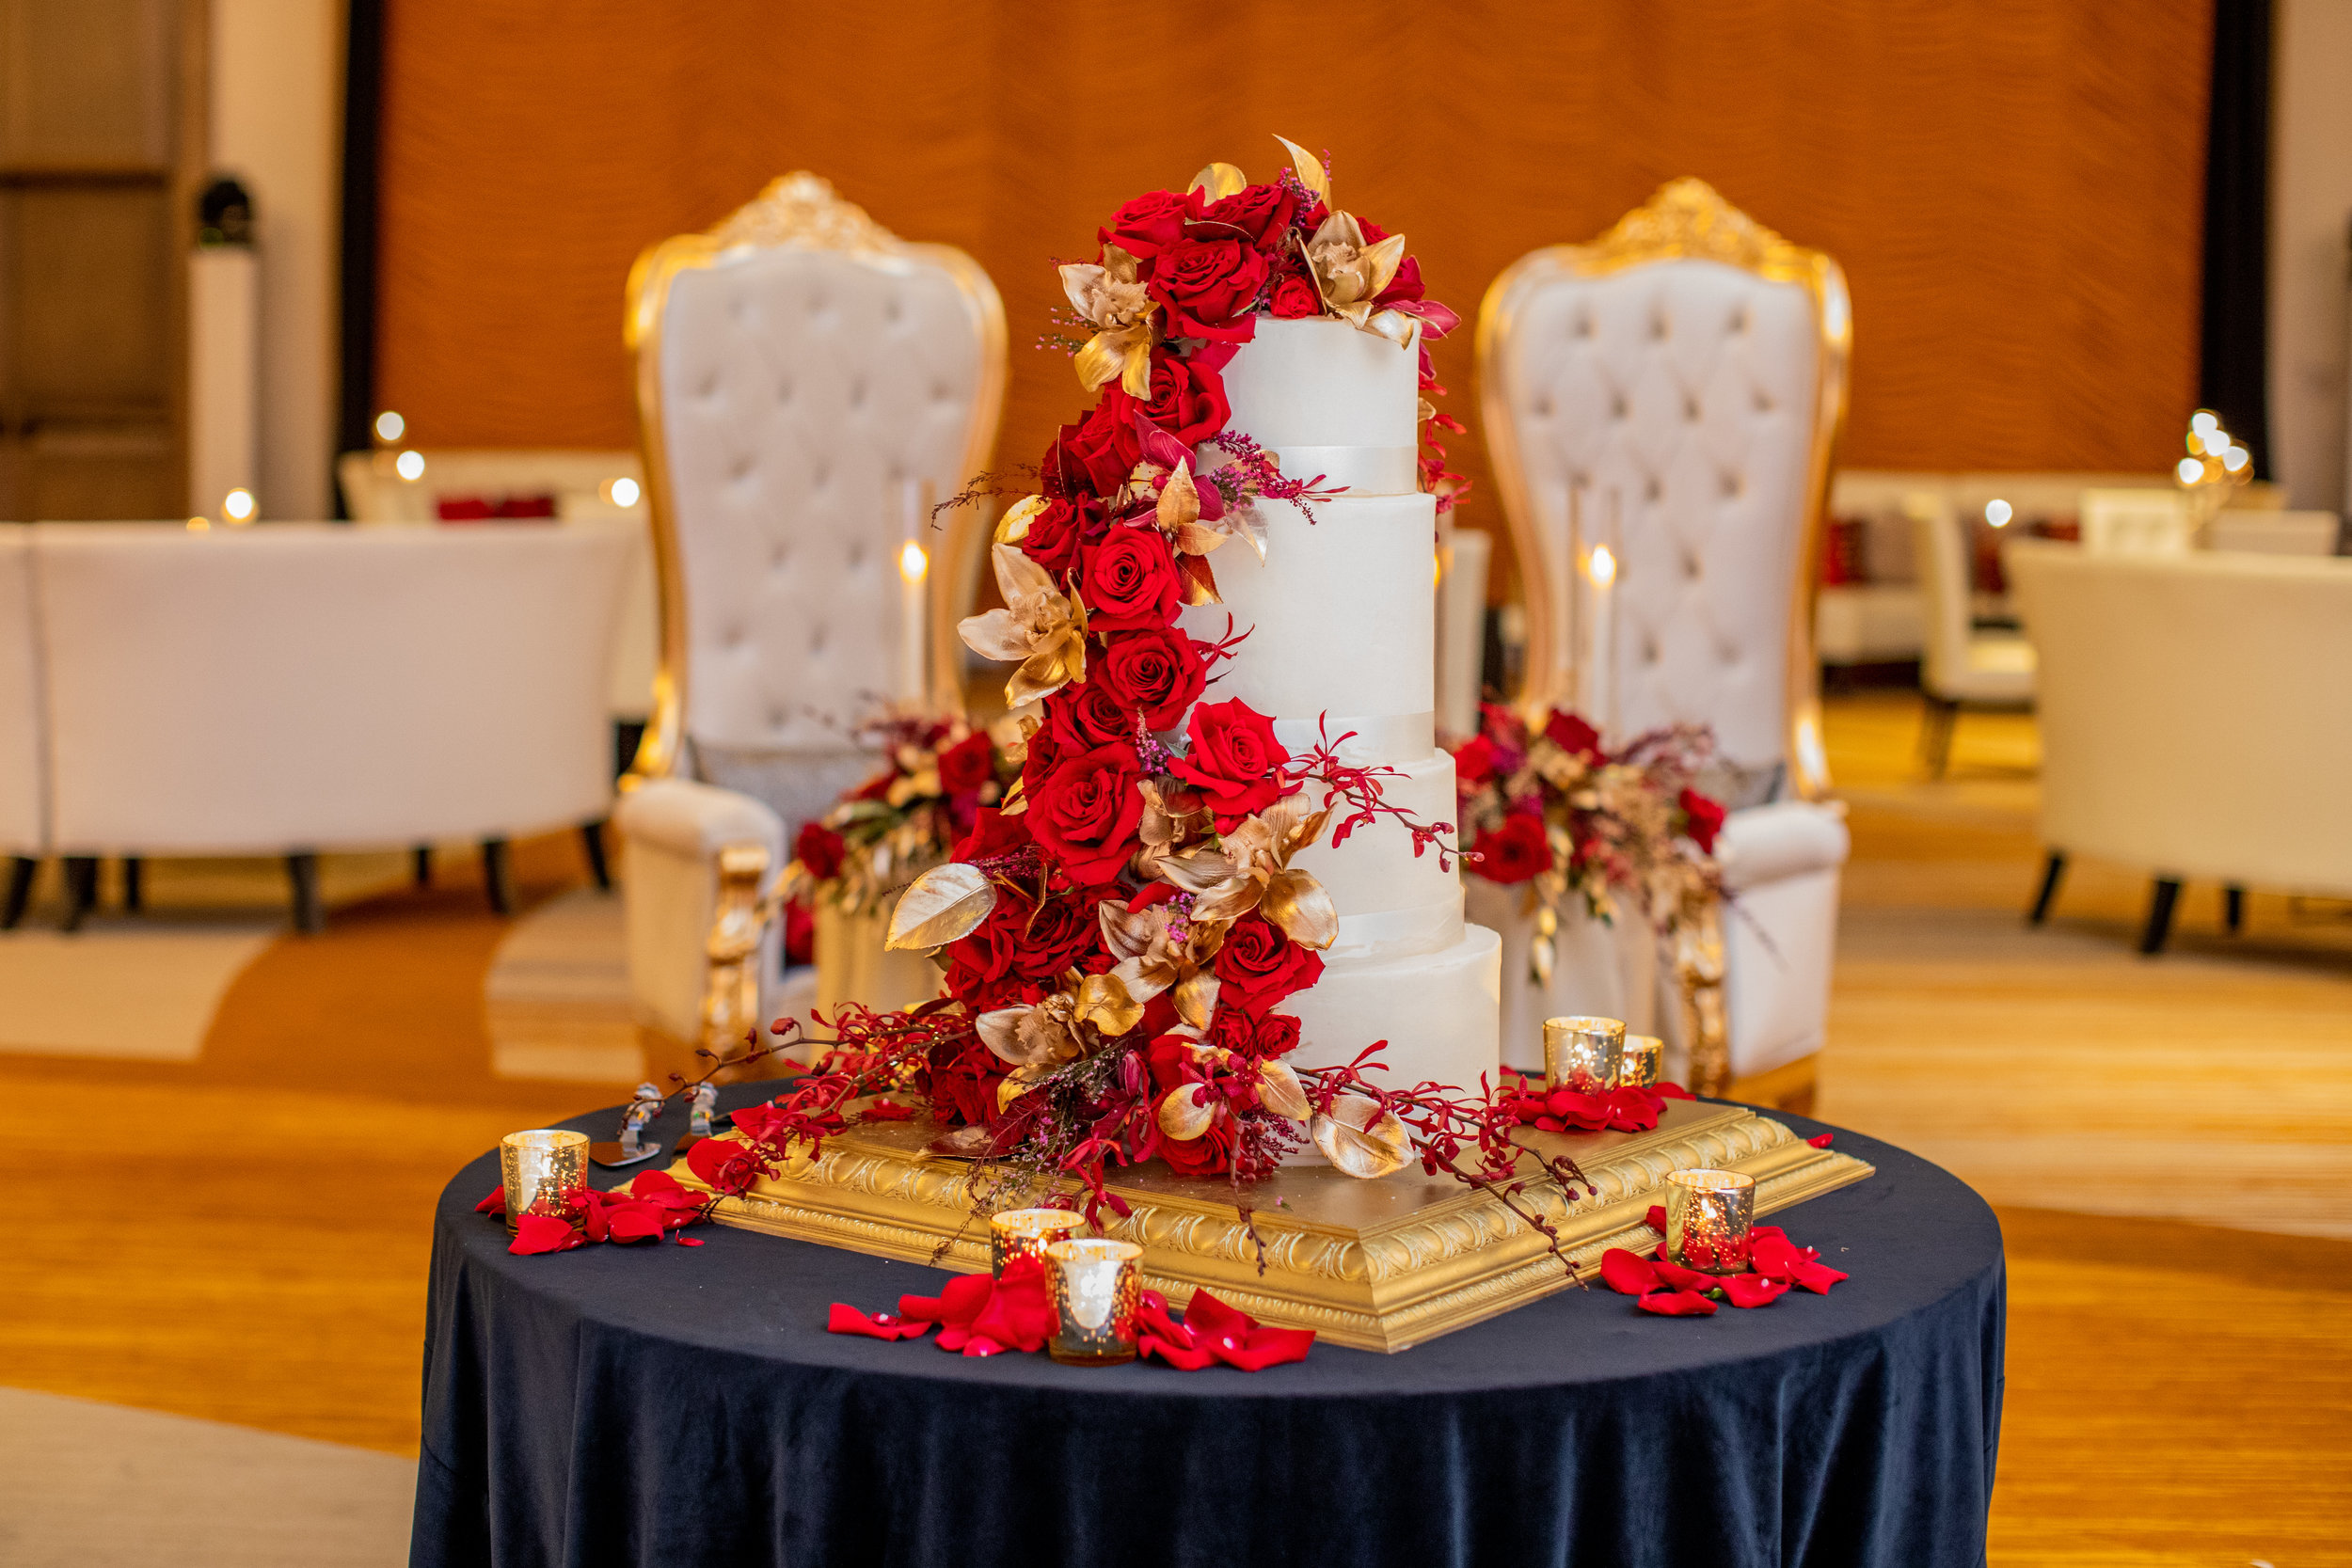 Ali_Louisville_Wedding_Emily_Lester_Photography_ReceptionDetails-80.jpg